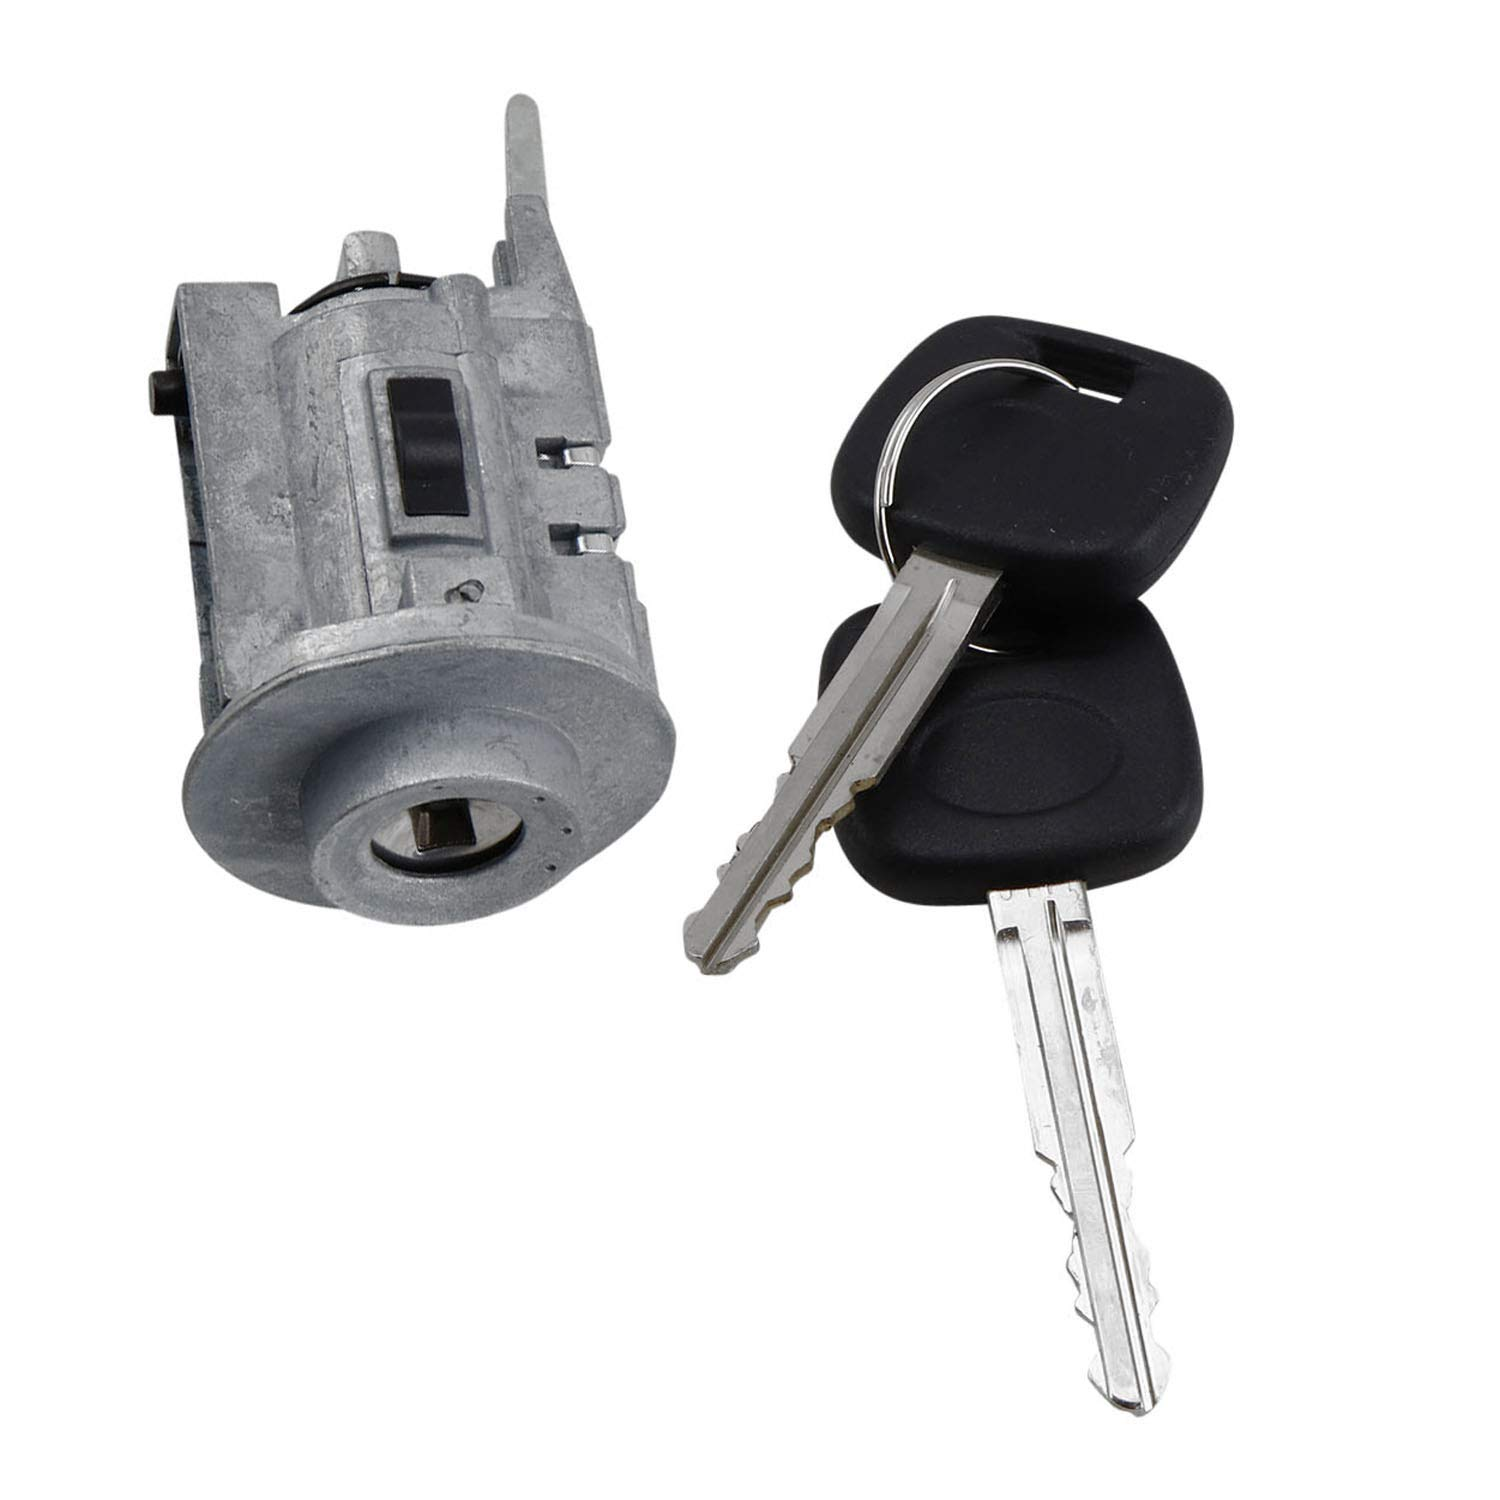 Beck Arnley 201-1950 Ignition Key and Tumbler